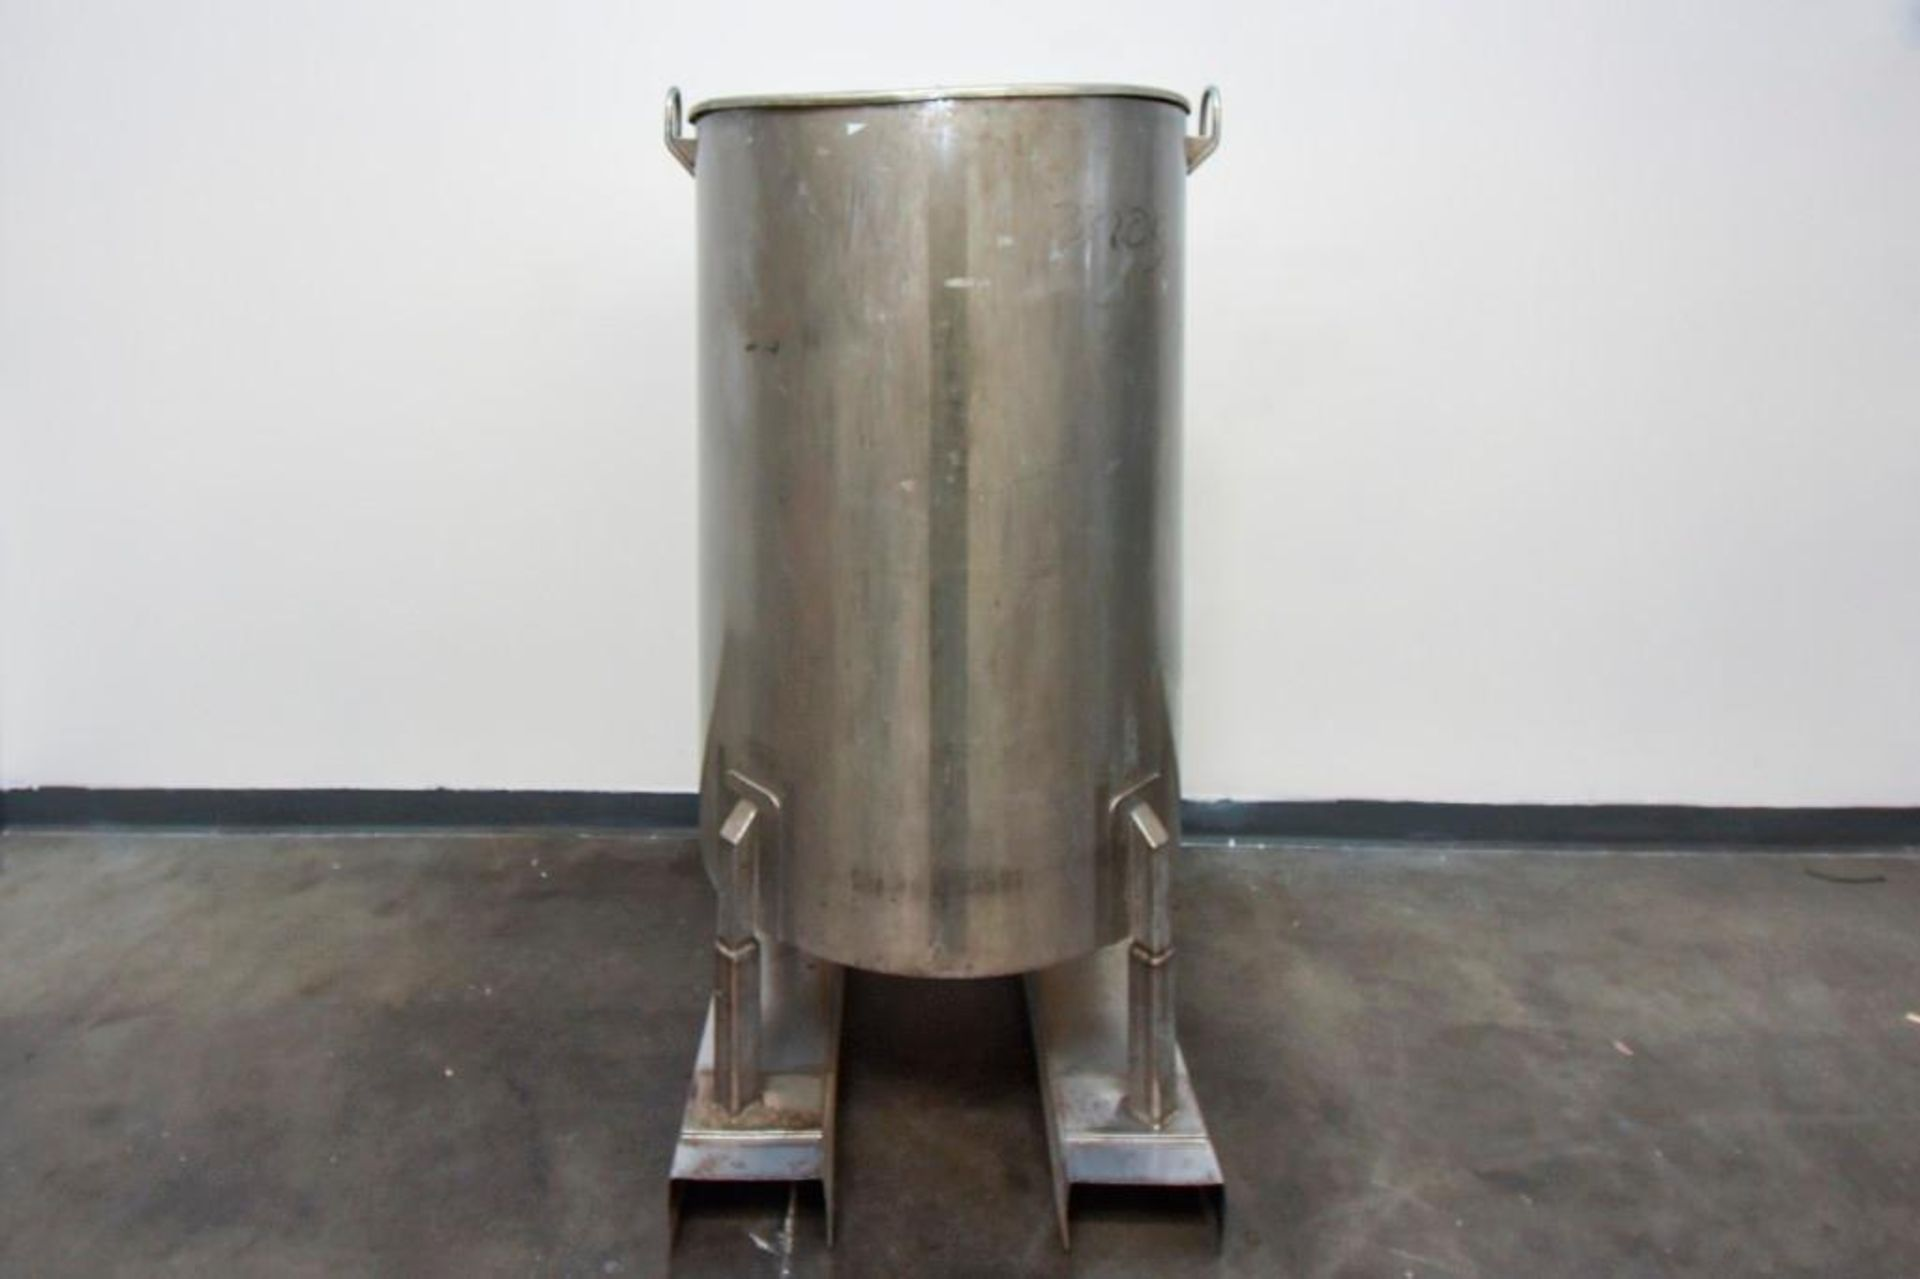 Jacketed Stainless Steel Holding Tank 340L - Image 5 of 13